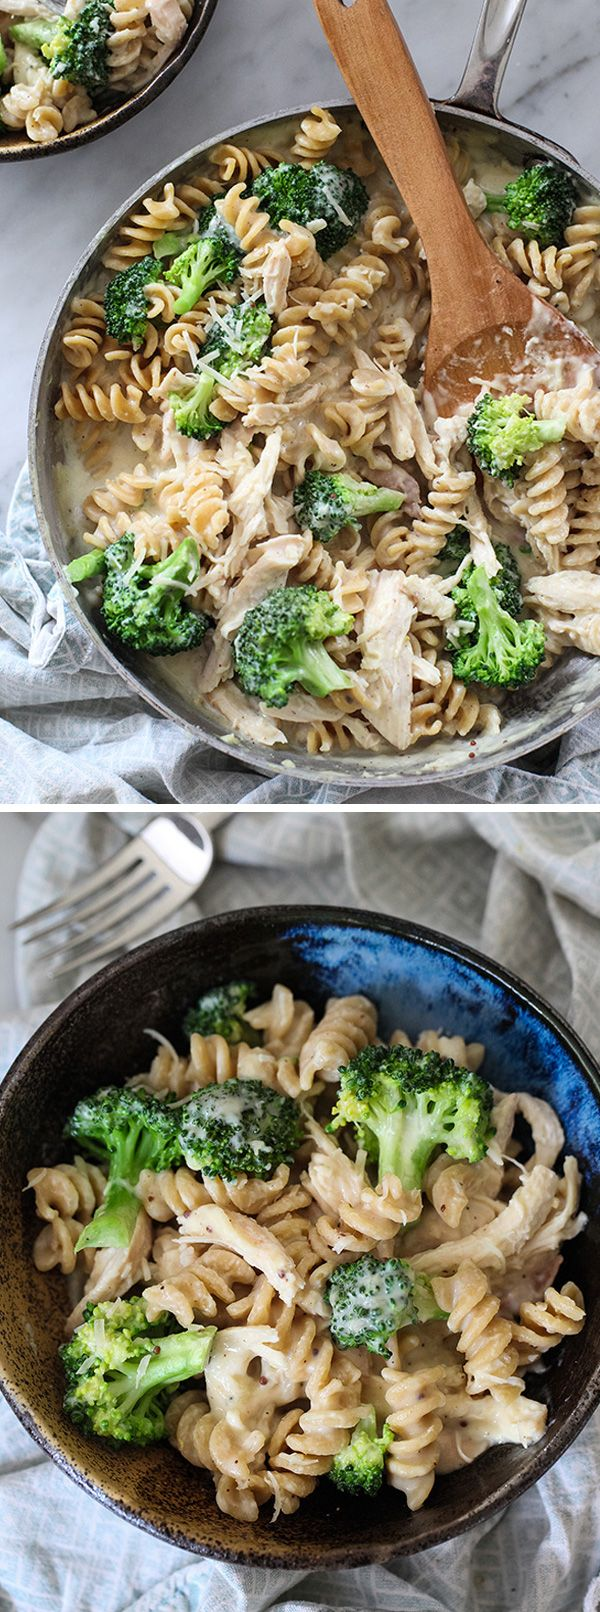 Whole-wheat pasta and fresh broccoli make this cheesy pasta a dinner favorite. #recipe #healthy